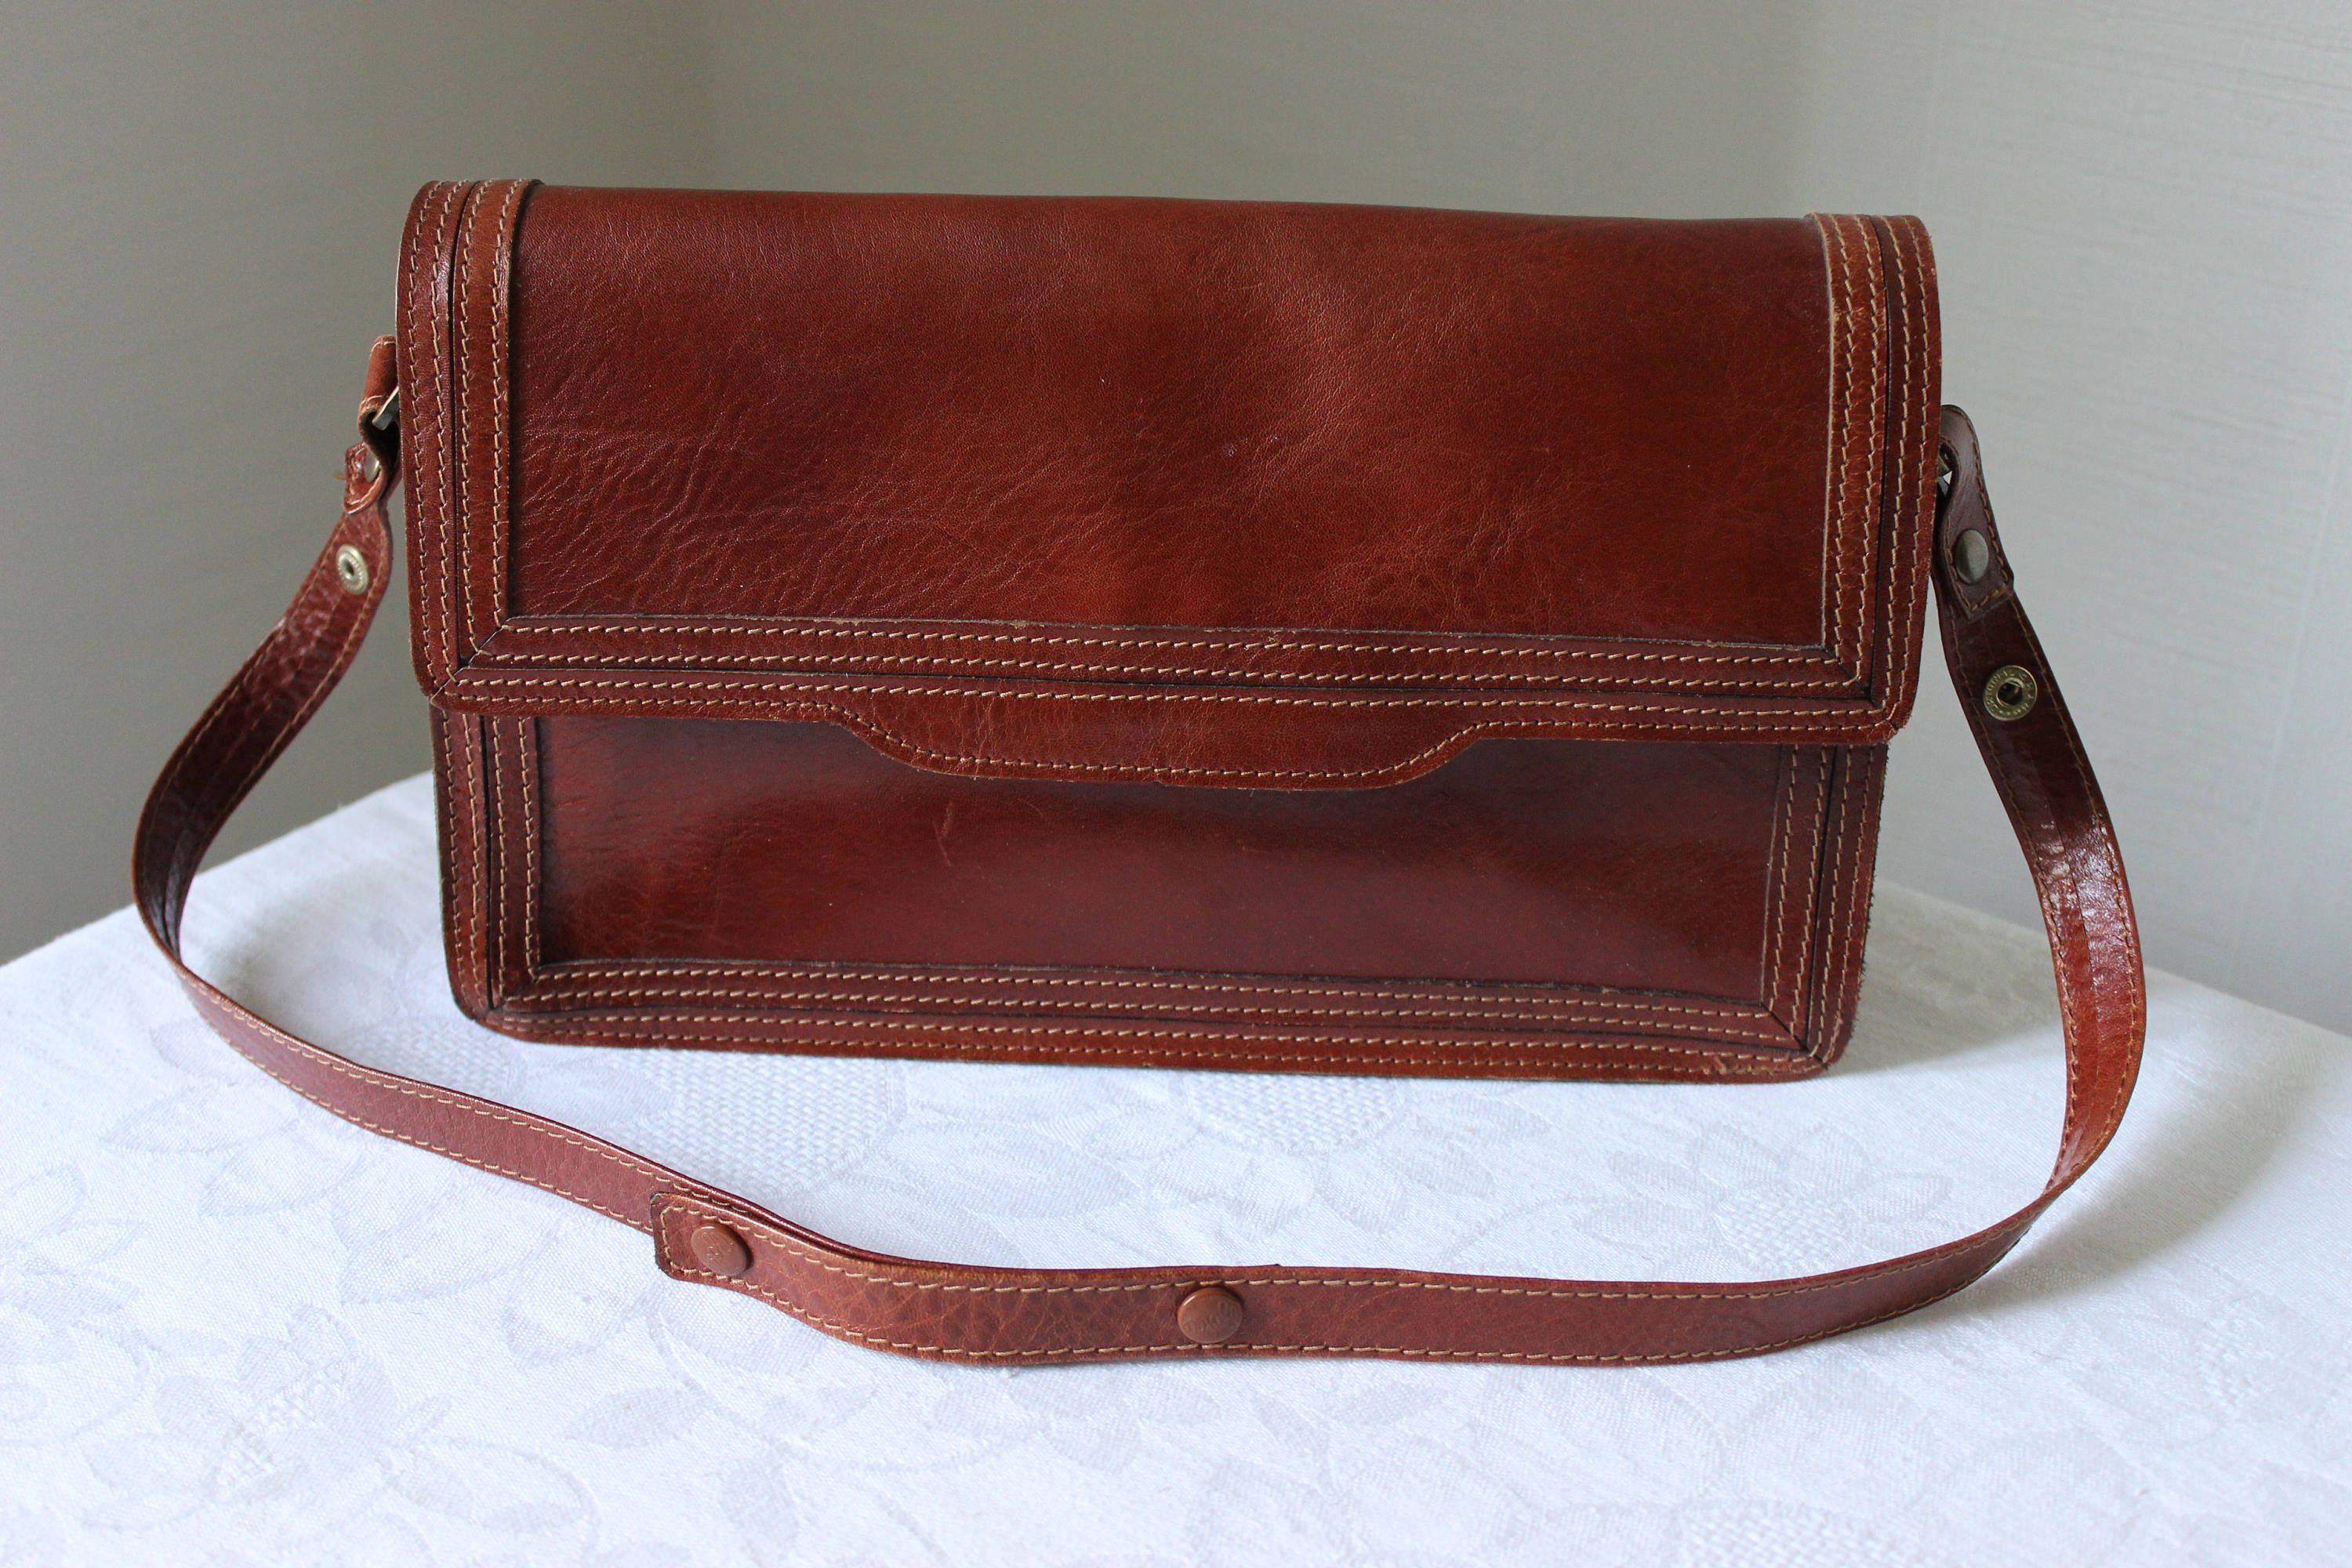 8869a546e980 BOXCA DENMARK Scandinavian Vintage Genuine Leather Shoulder Bag (11x7)  inches (28,5 x 17,5) cm Brown Leather Crossbody Purse Leather Satchel by ...